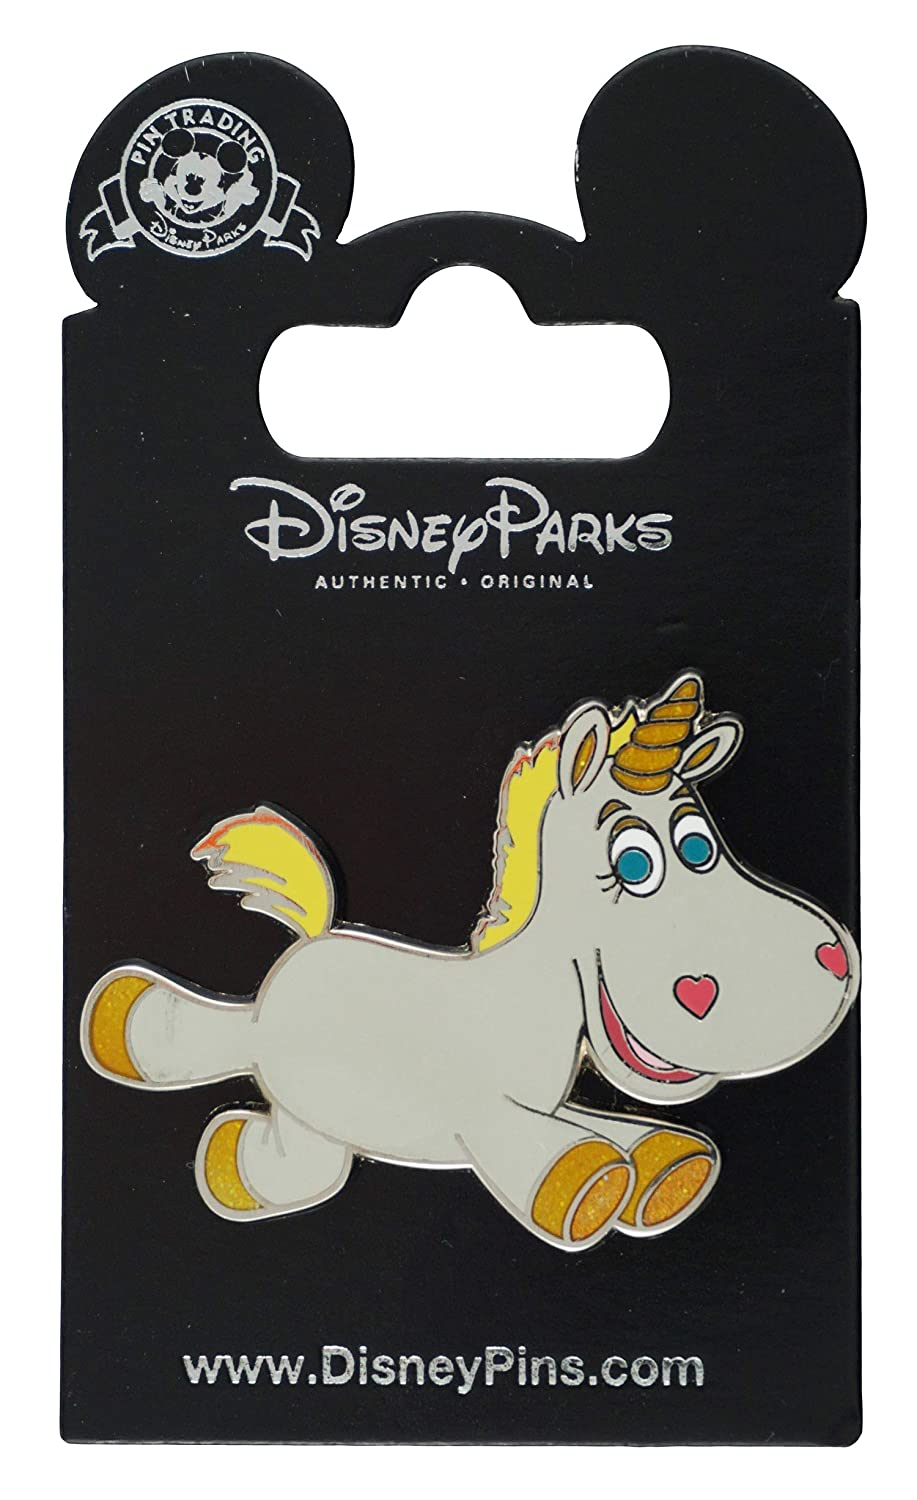 Disney Pin - Toy Story - Buttercup the Unicorn